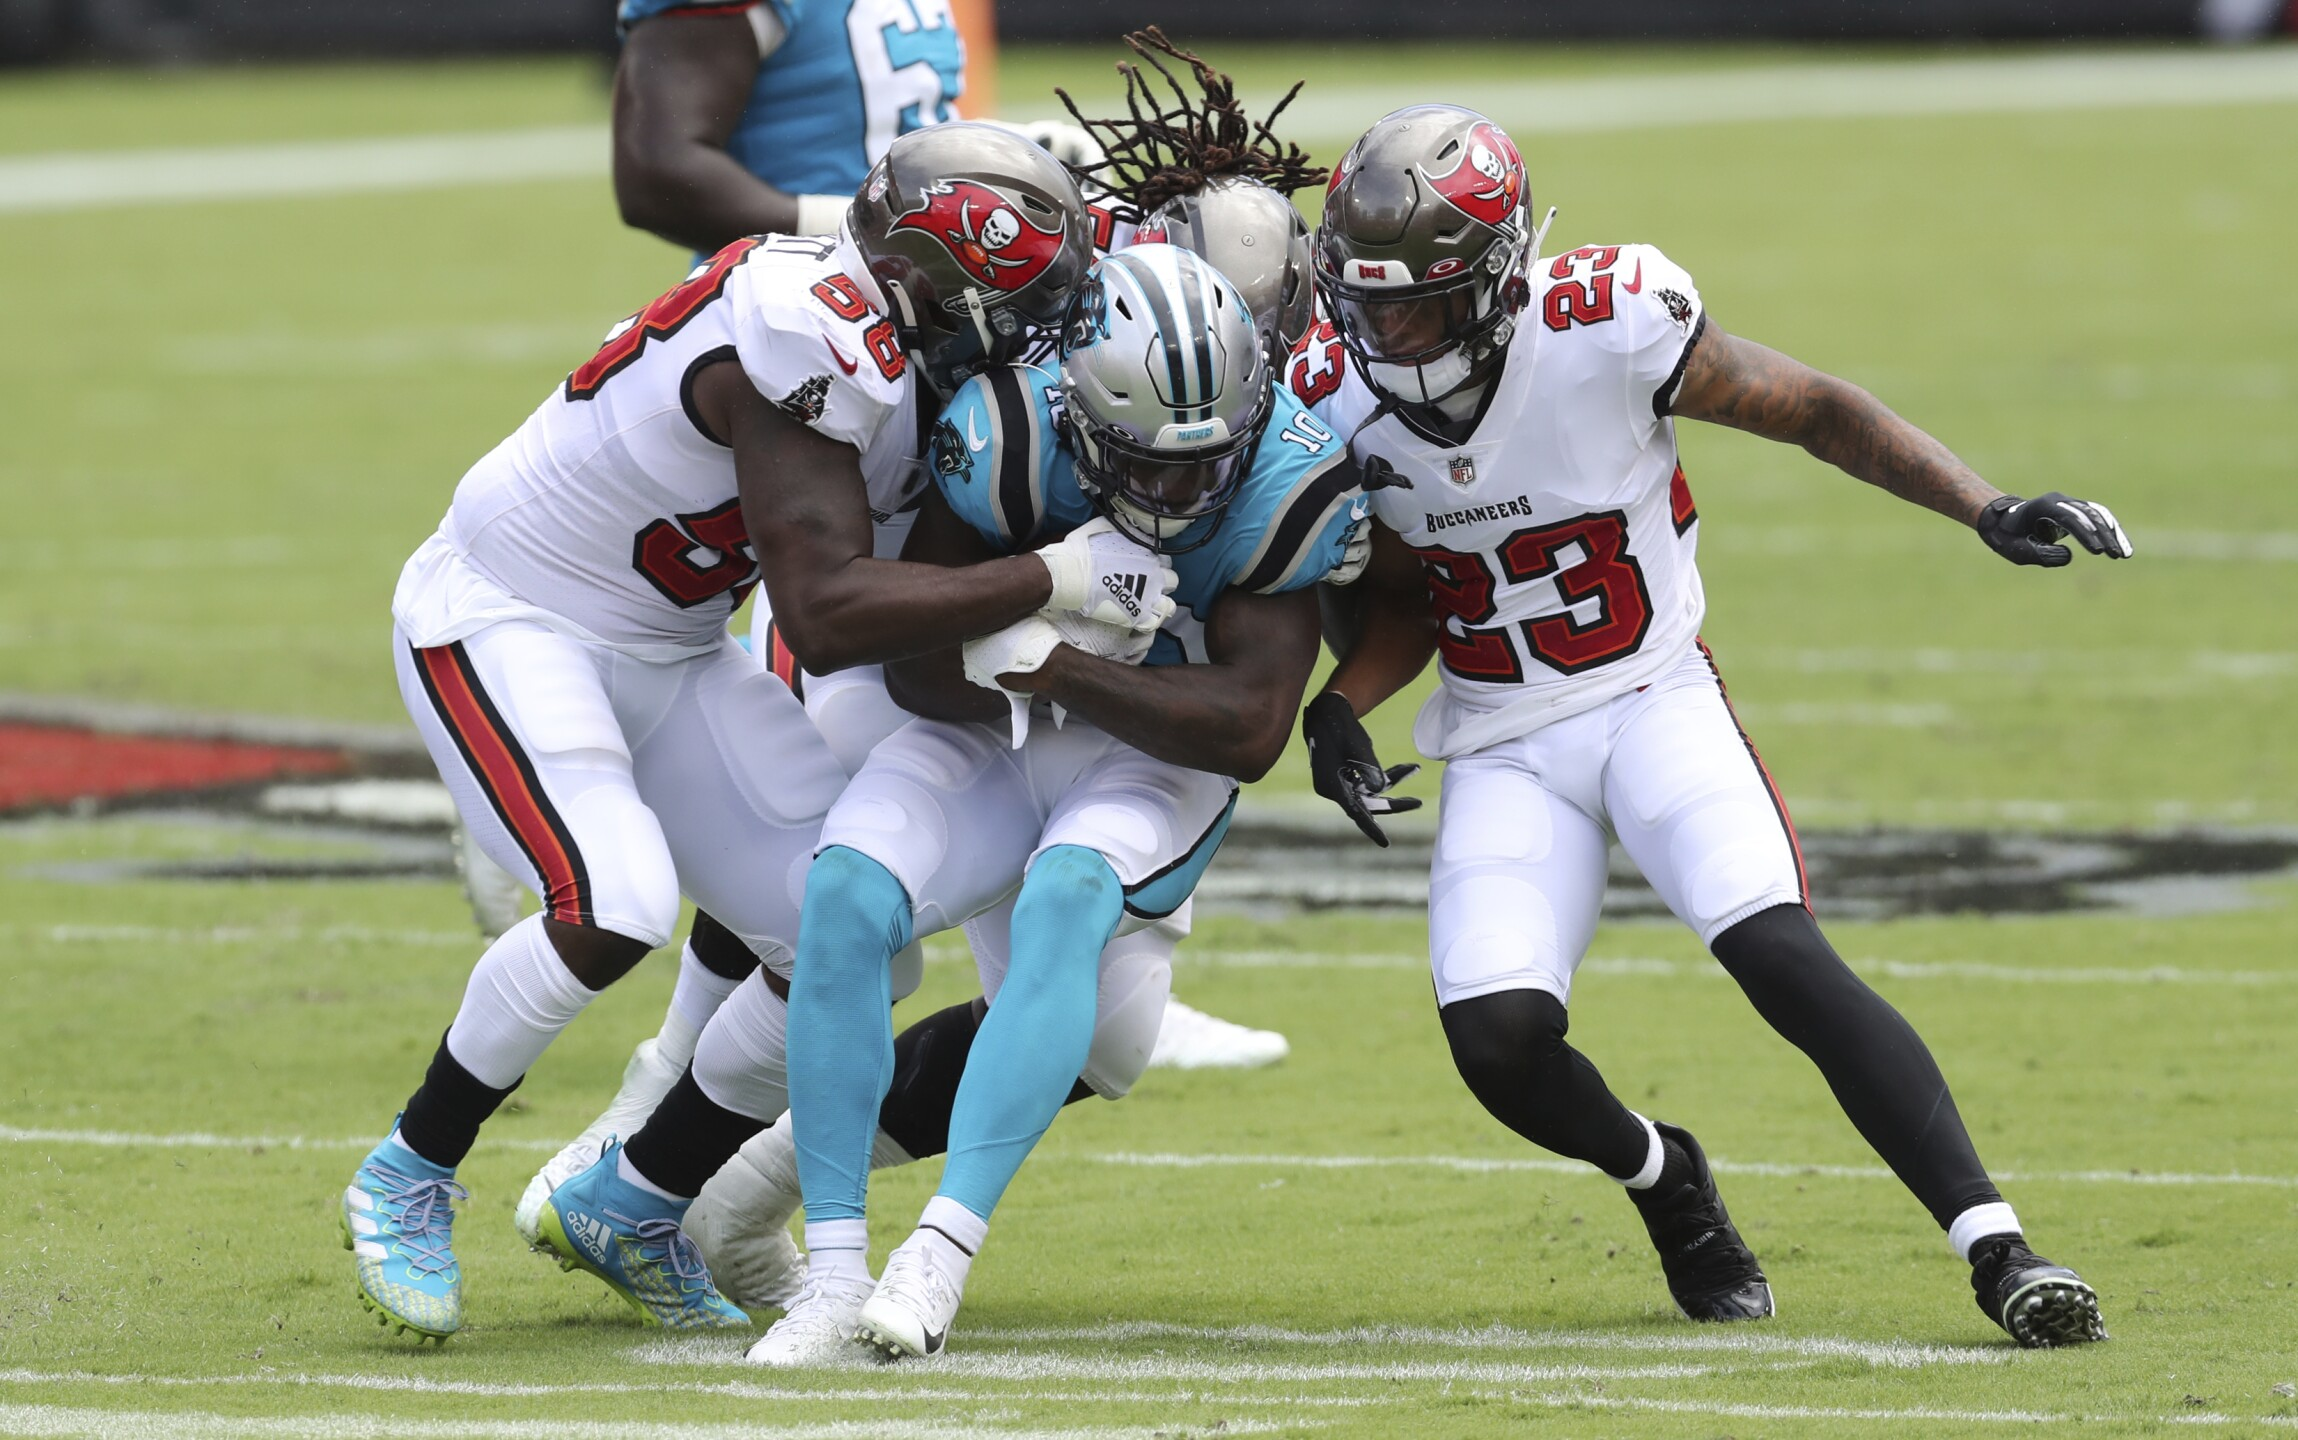 ap-images-buccaneers-panthers-game-sept-20-2020-10